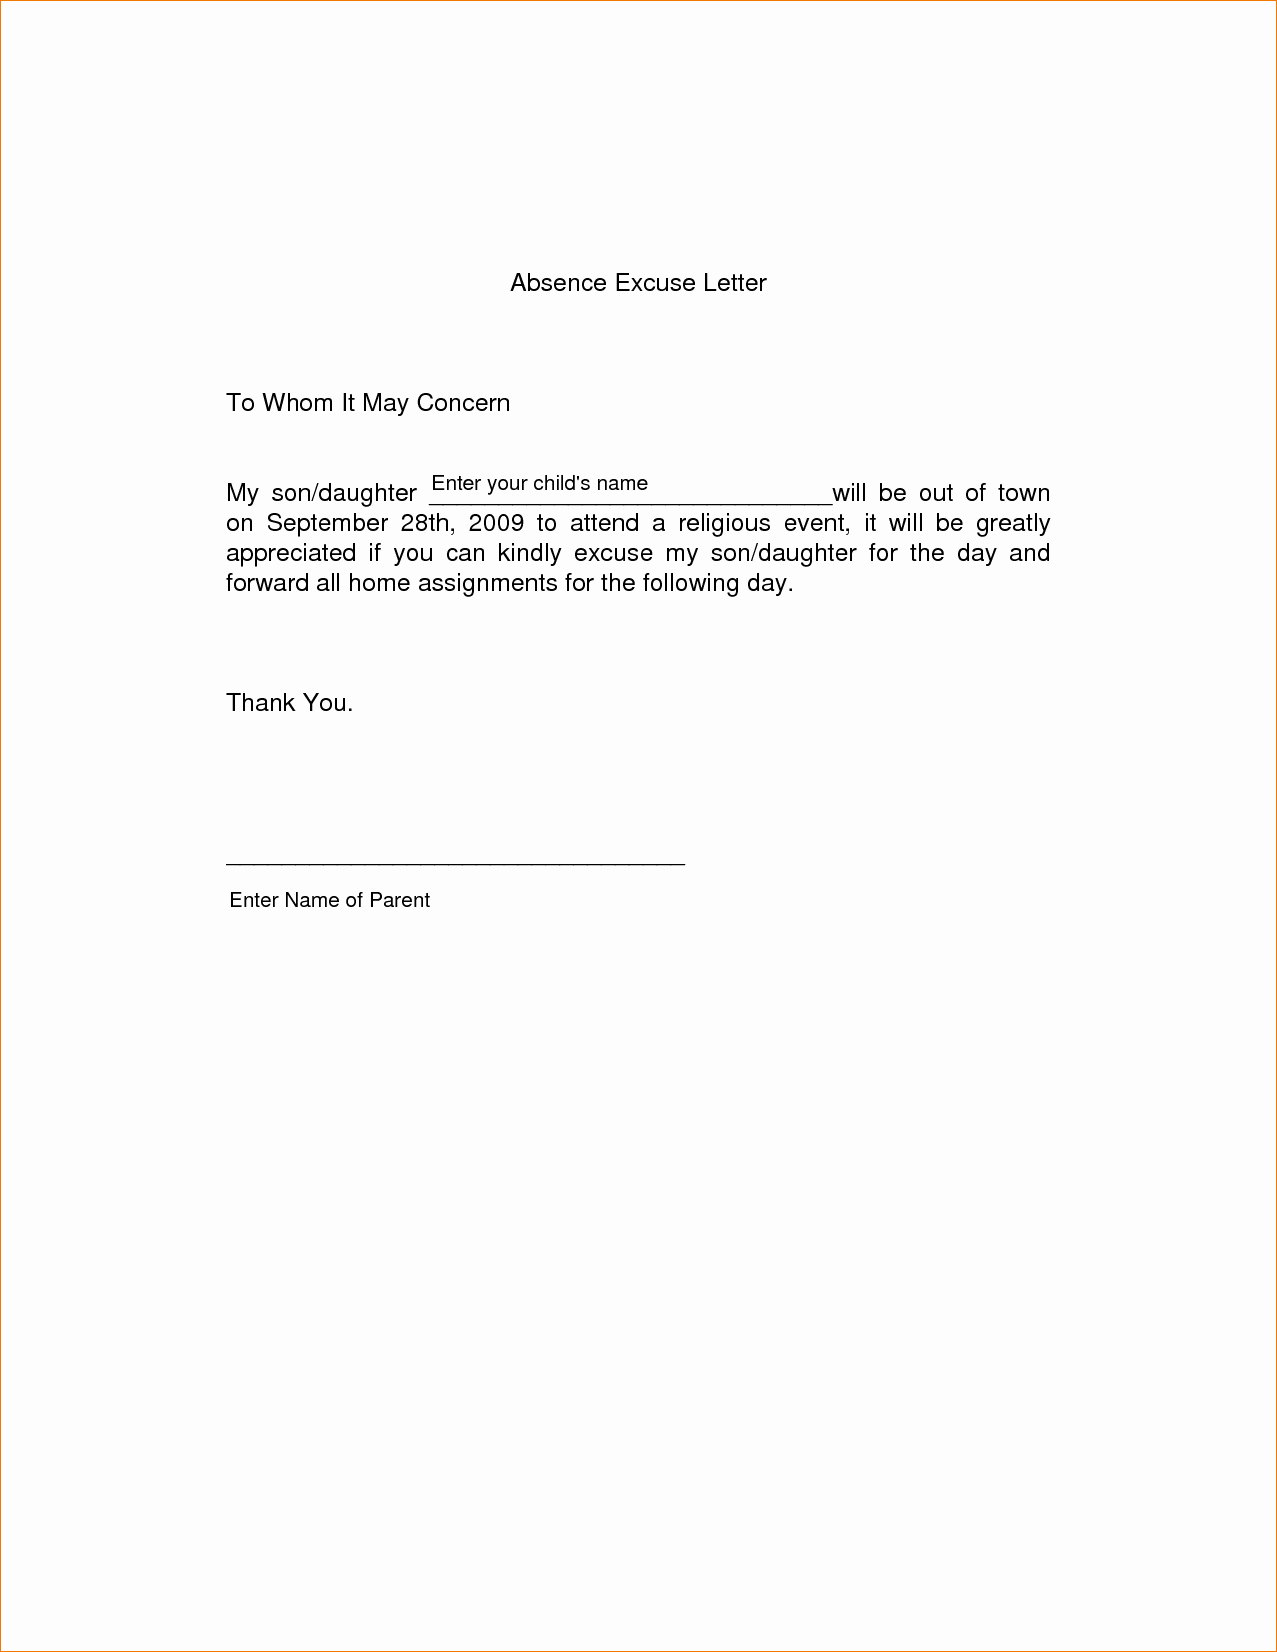 Absence From School Letter Sample Luxury 11 Absence Excuse Letteragenda Template Sample